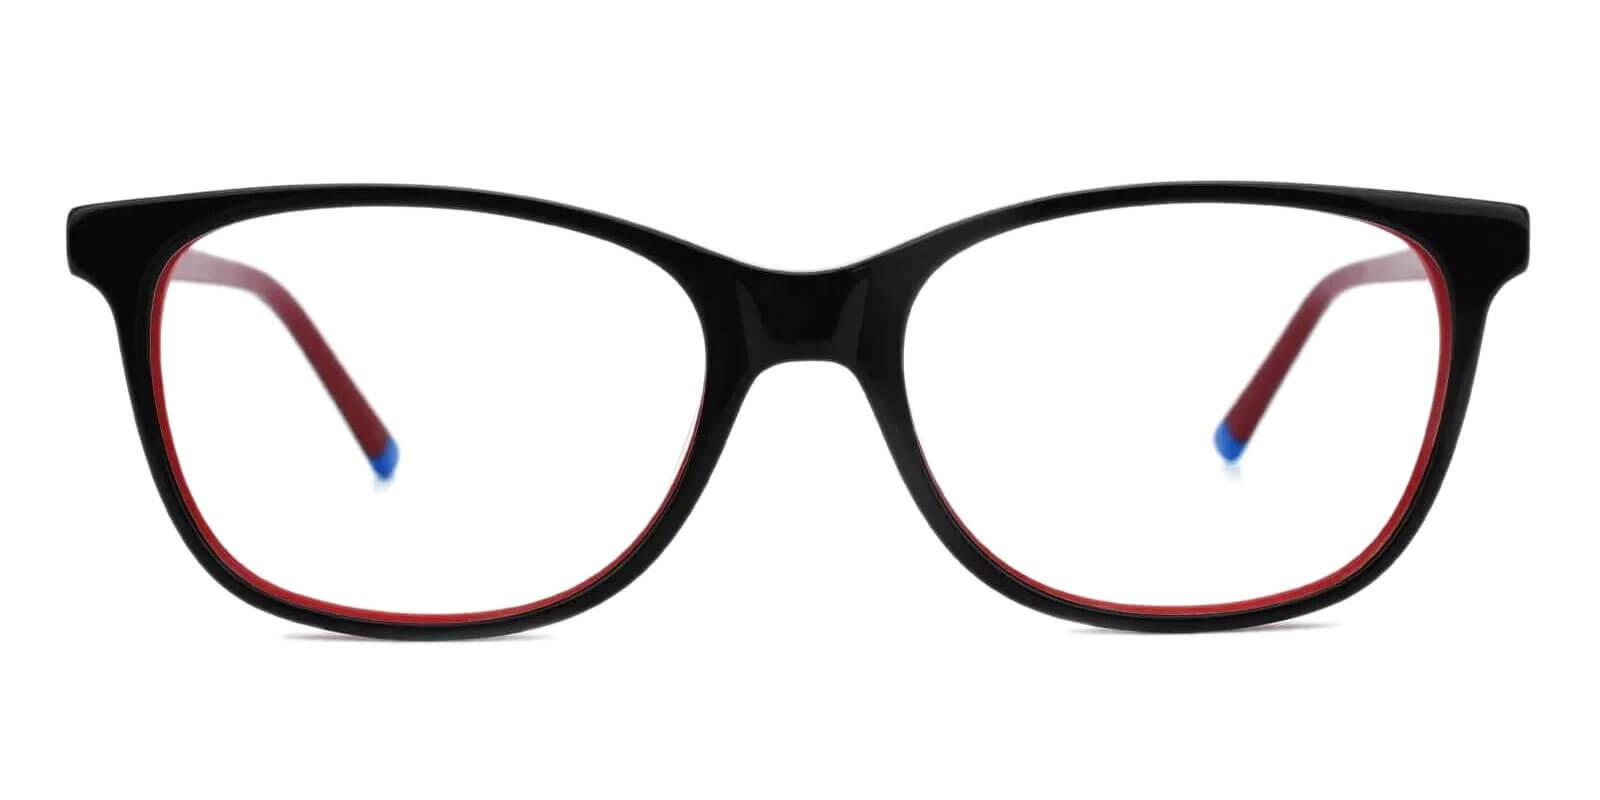 Hibbard Red Acetate Eyeglasses , SpringHinges , UniversalBridgeFit Frames from ABBE Glasses